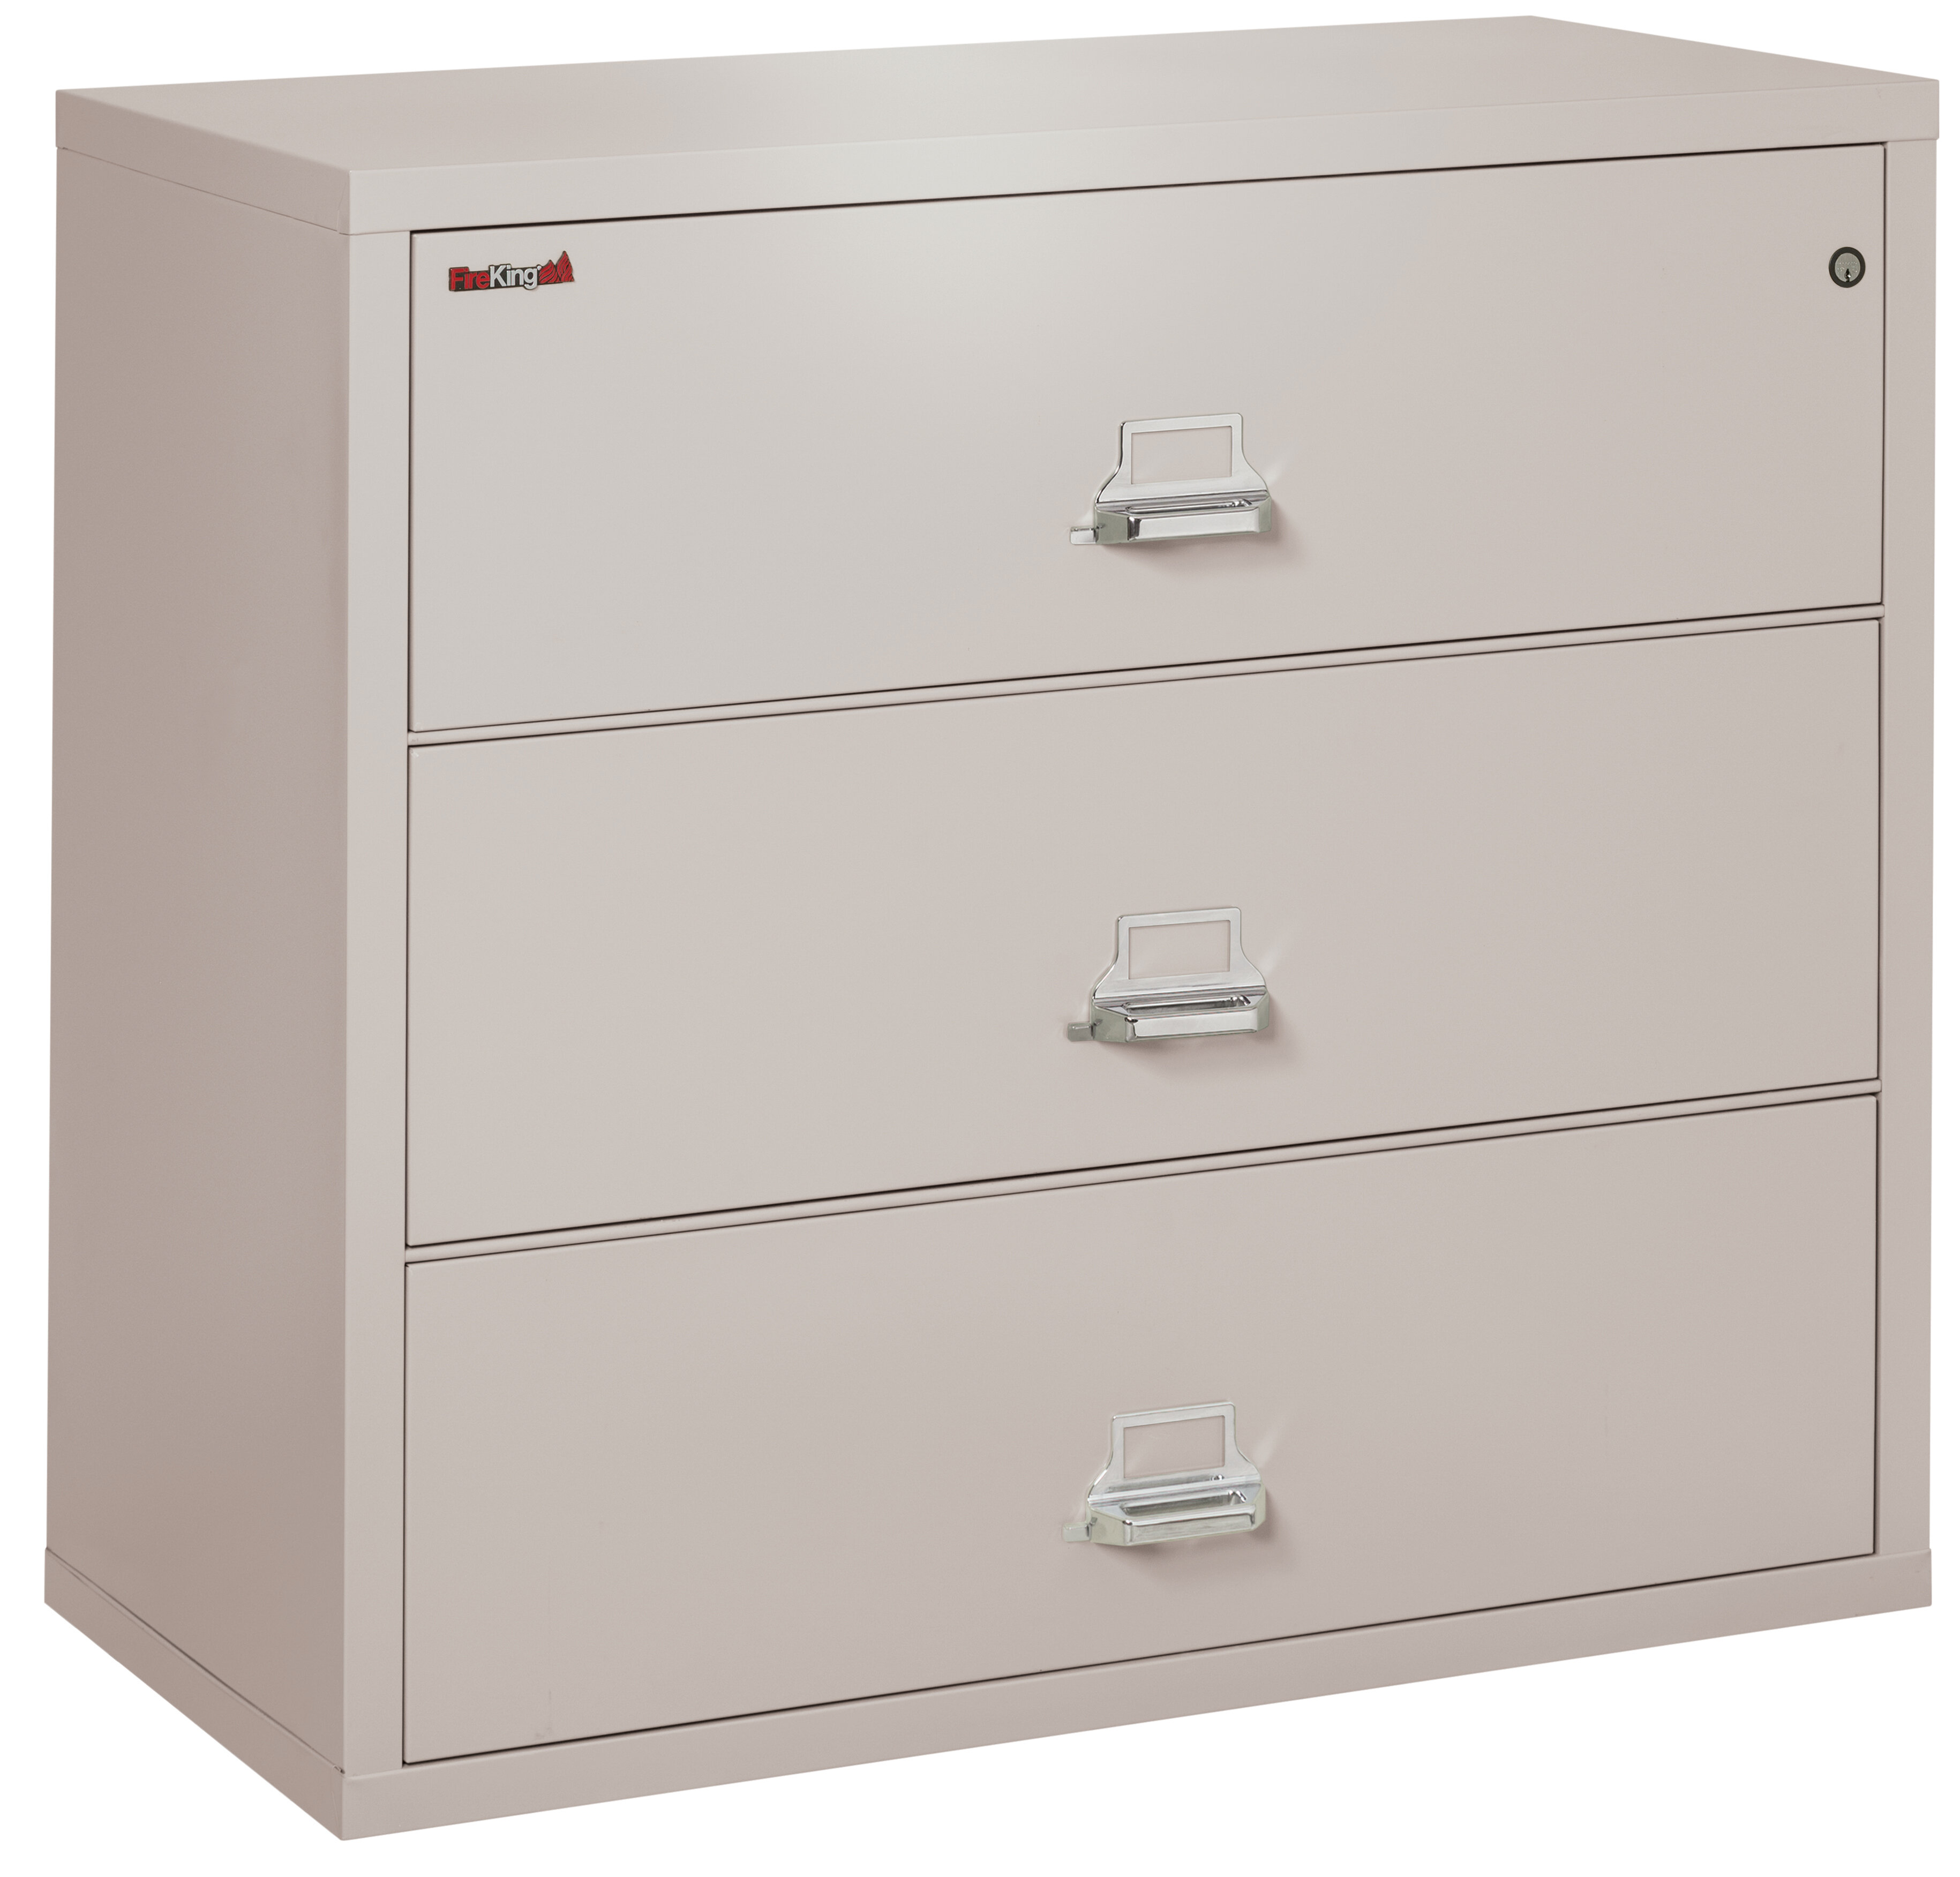 34-Drawer Lateral File Cabinet